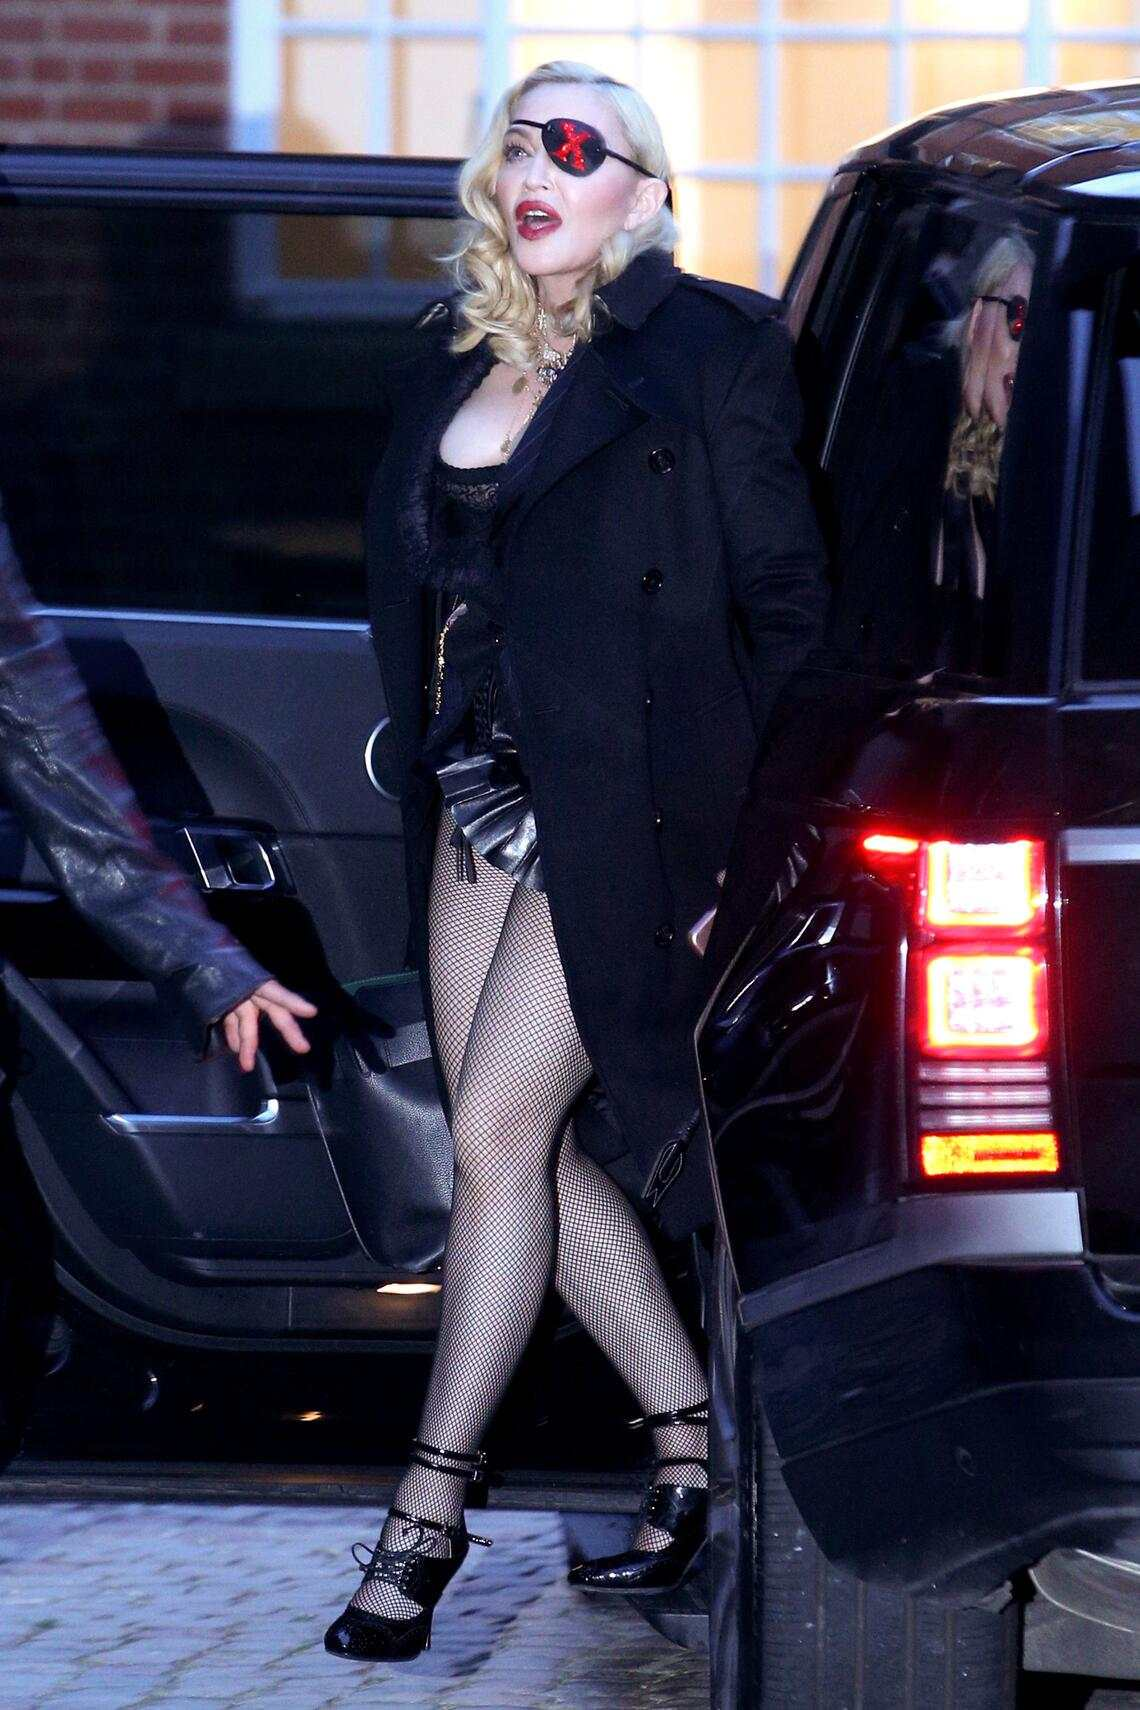 Mandatory Credit: Photo by Beretta/Sims/REX (10217892l)MadonnaMadonna out and about, London, UK - 24 Apr 2019